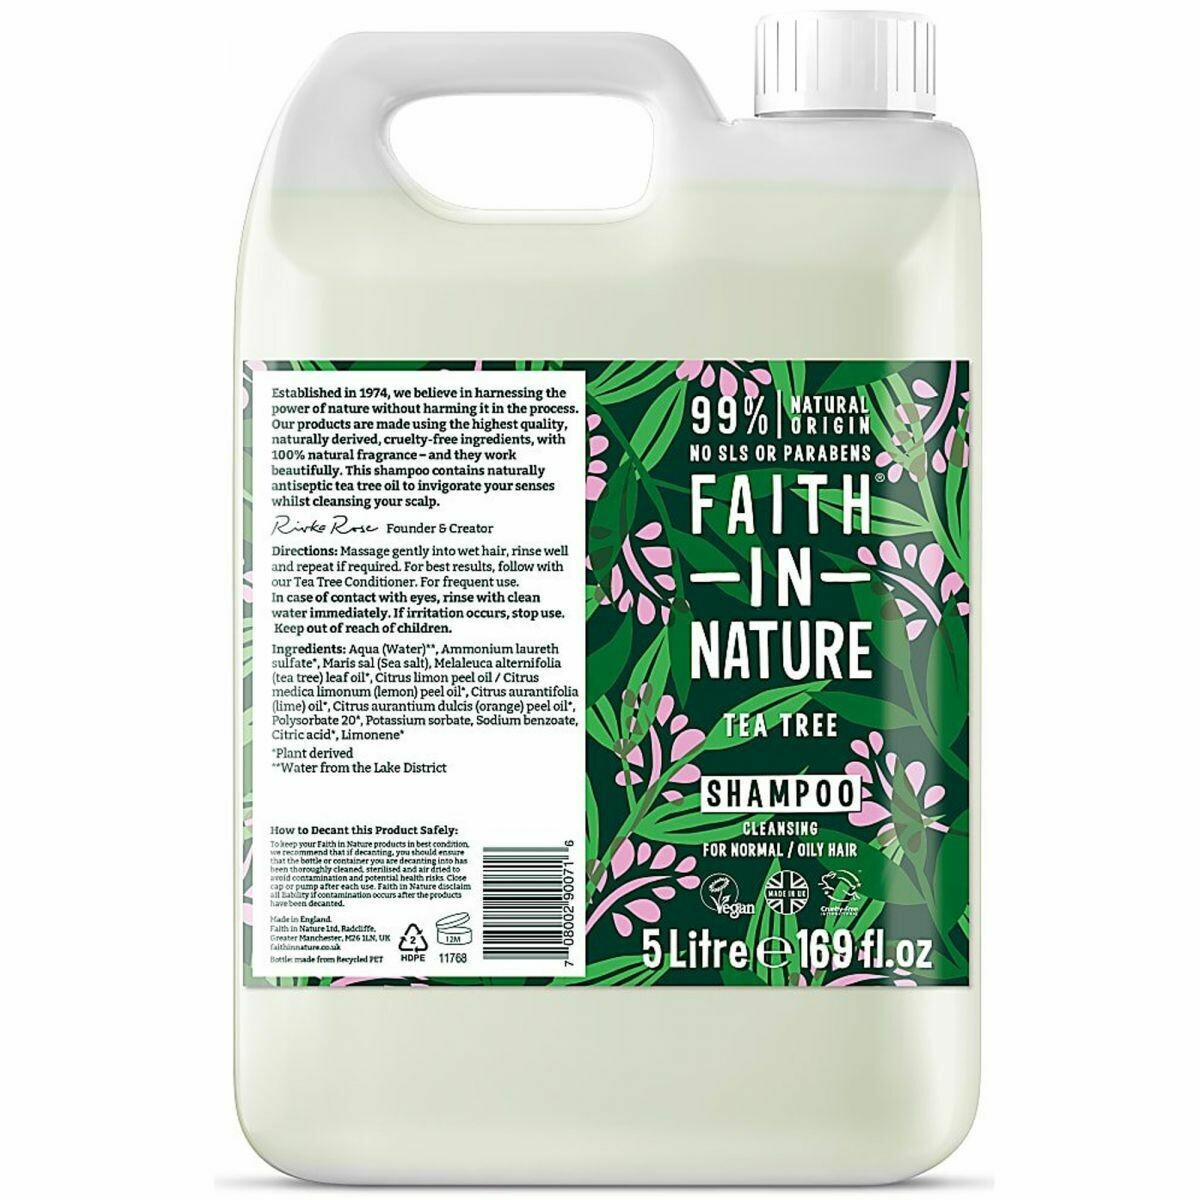 Shampoo Tea Tree (Bottle) - Faith in Nature